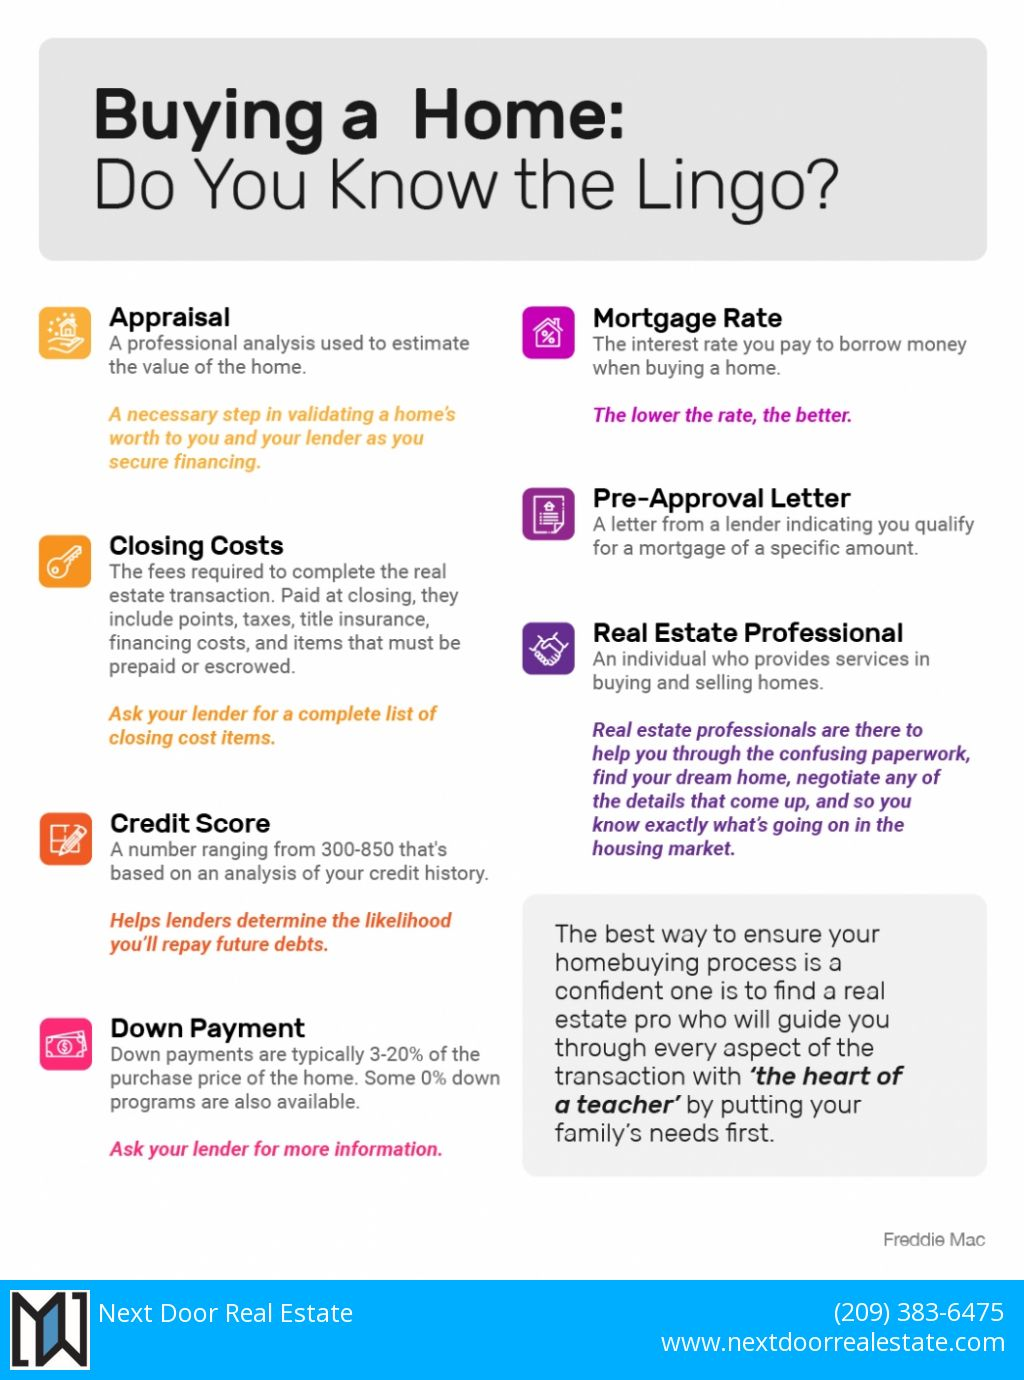 Buying a Home: Do You Know the Lingo